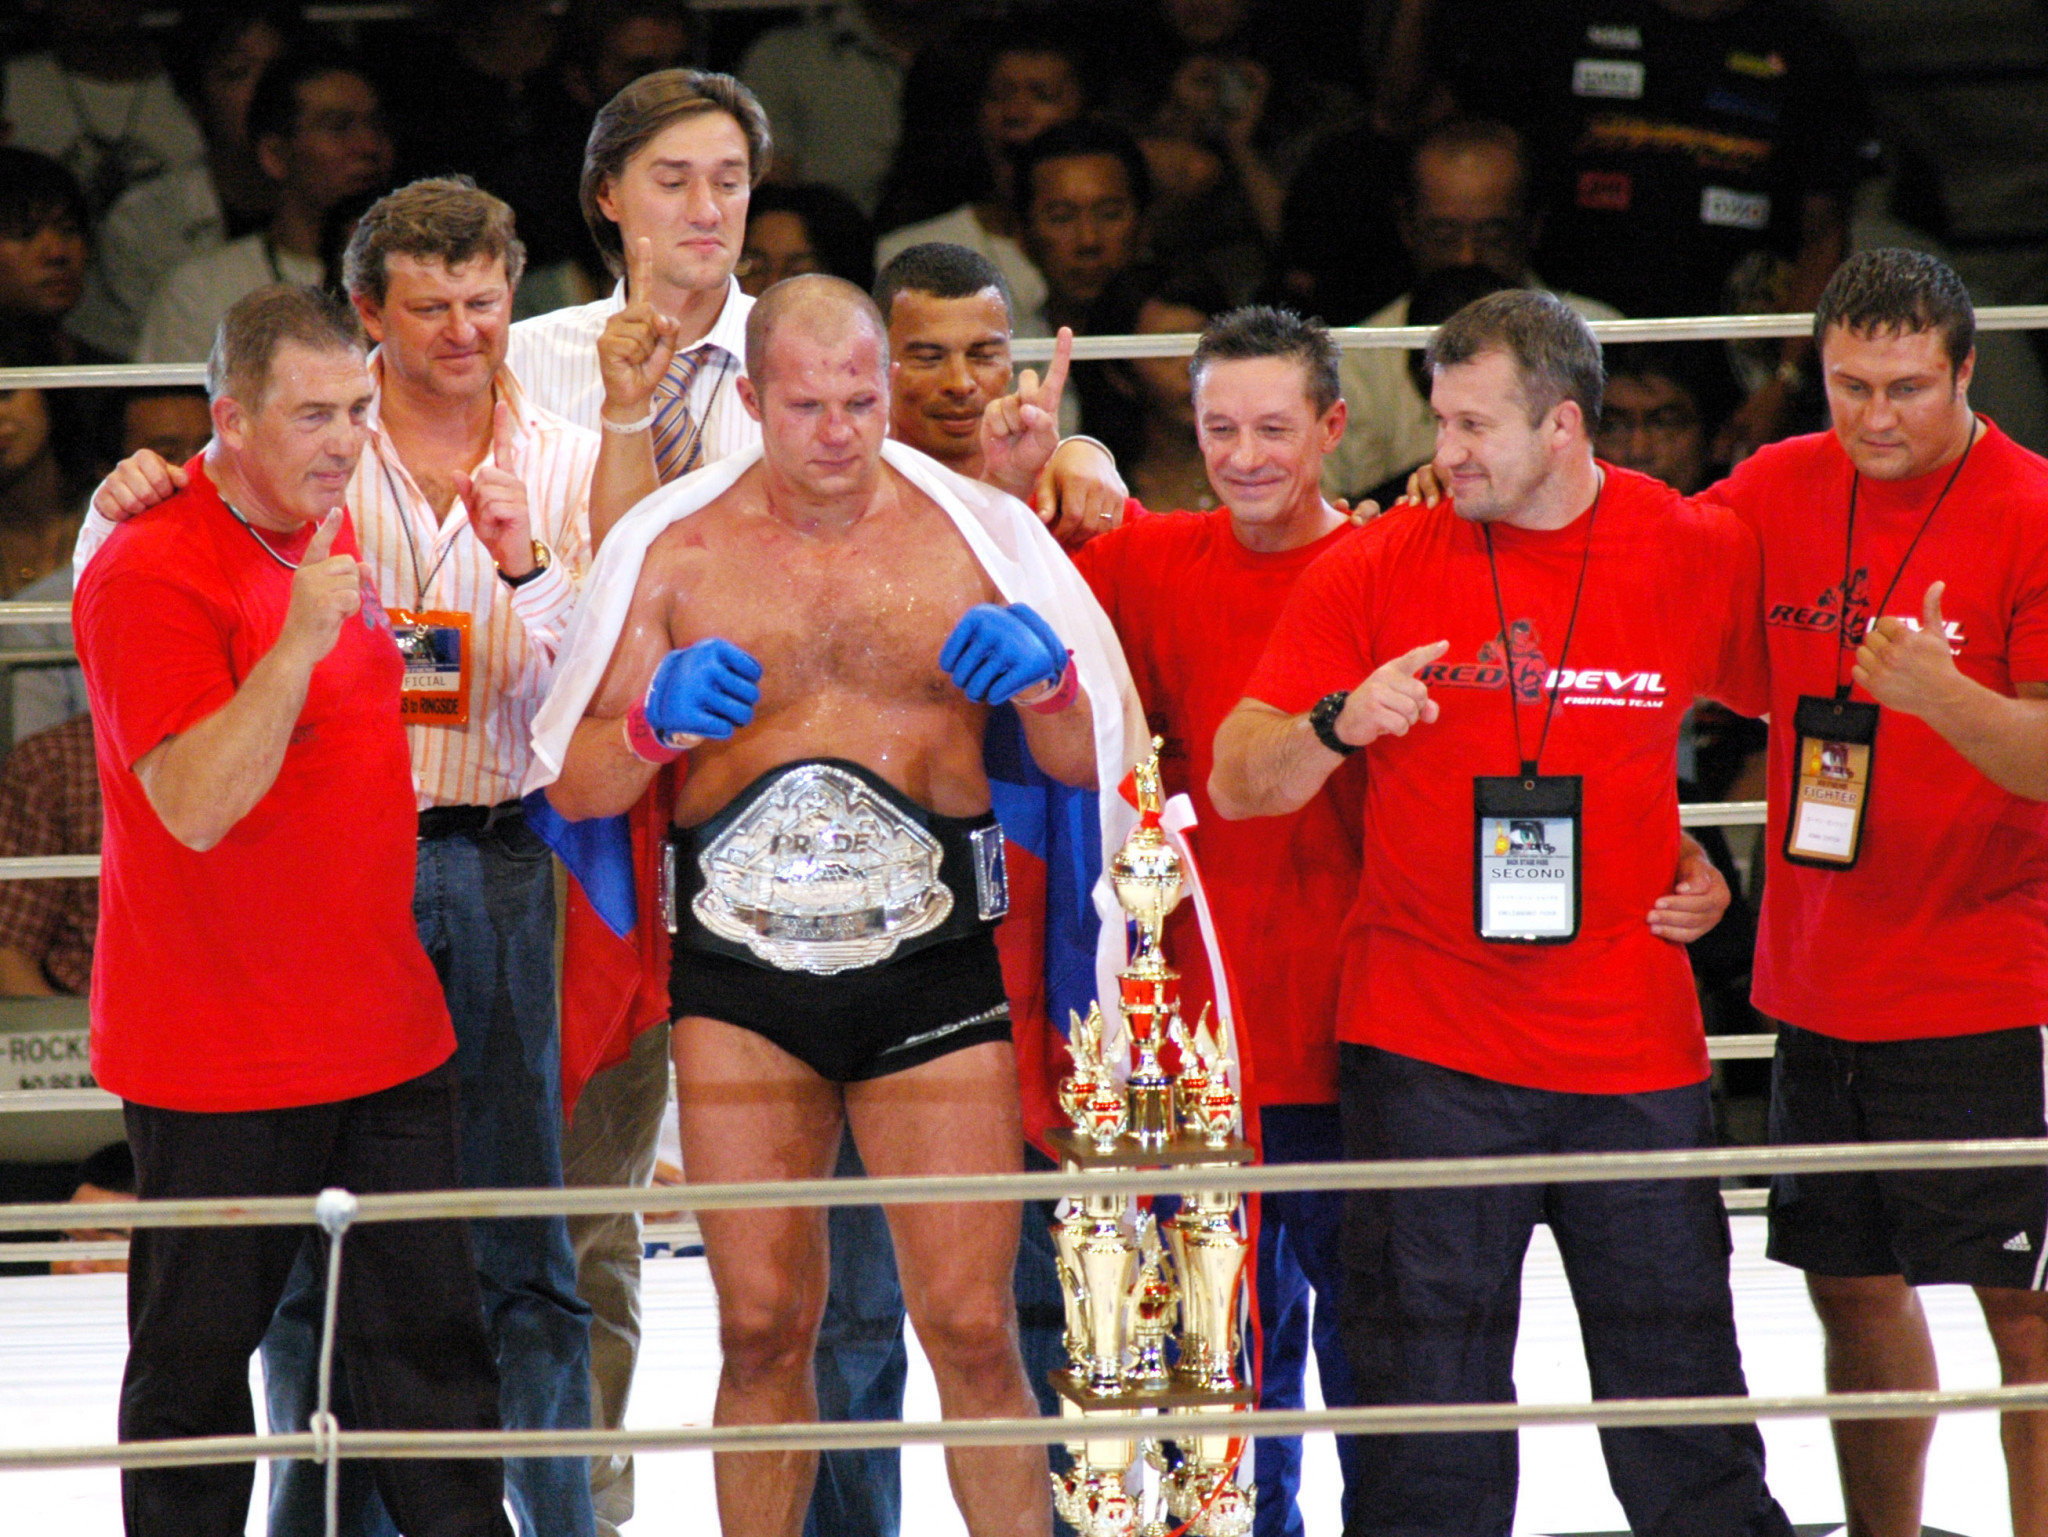 Coach of four-time combat sambo world champion Emelianenko passes away